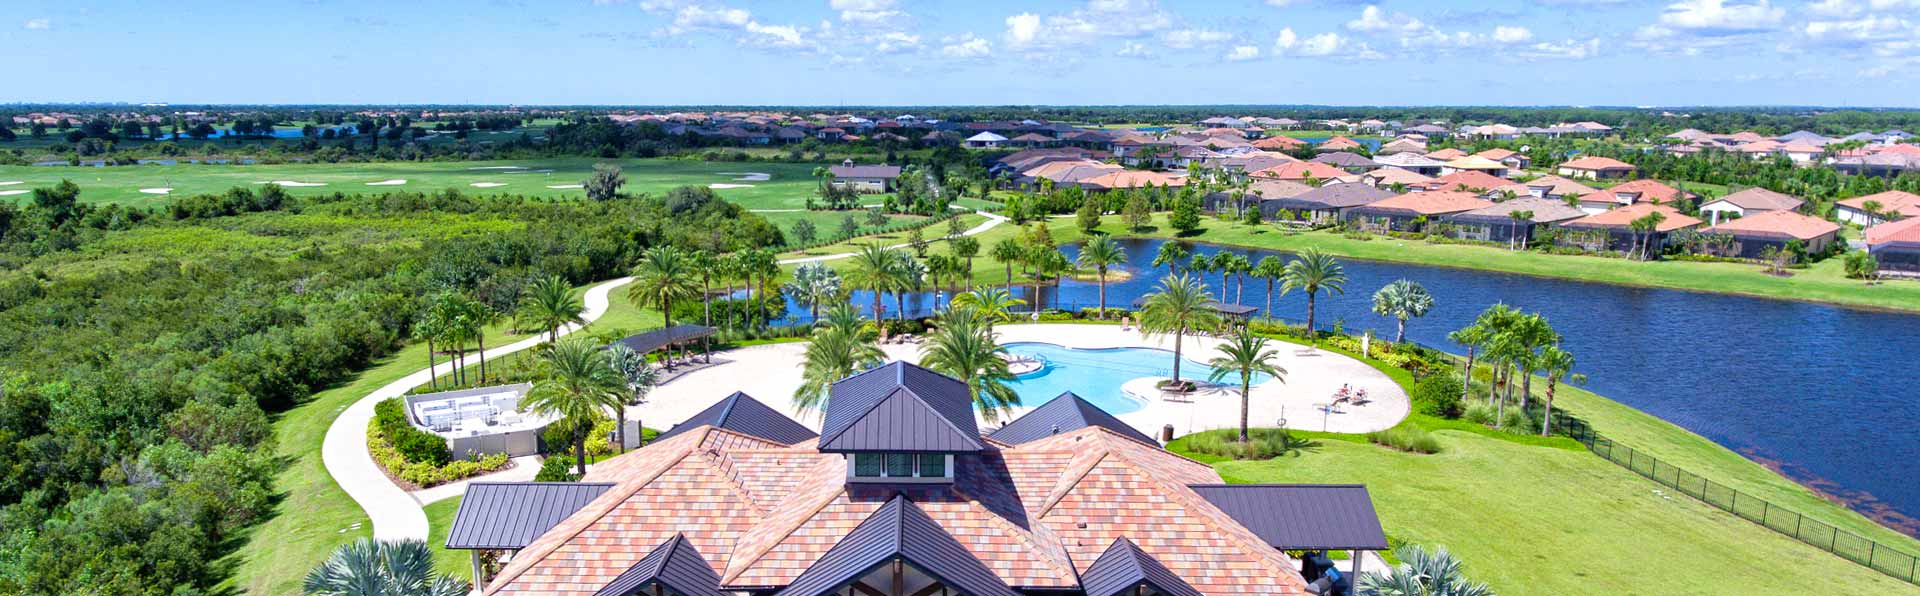 View of Lakewood Ranch from above